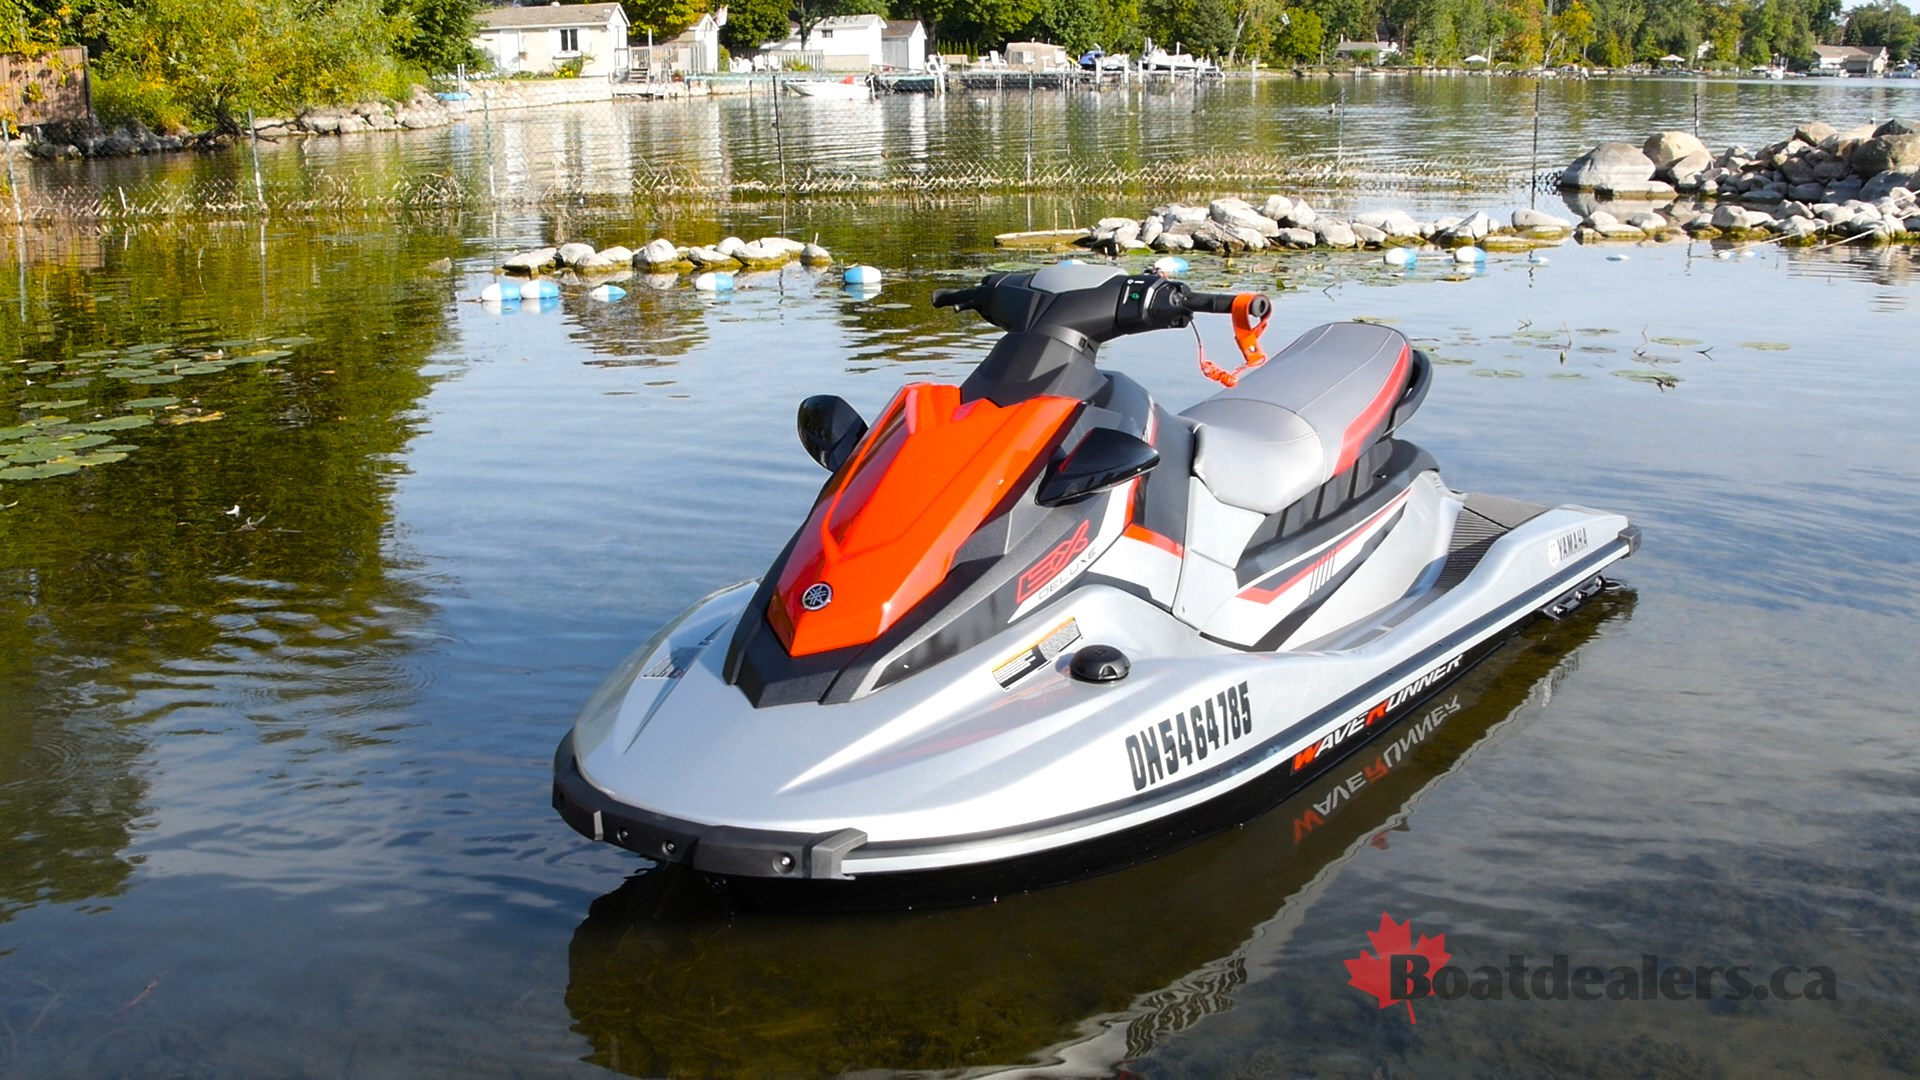 2017 Yamaha Ex Deluxe Personal Water Craft Boat Review Boatdealers Ca